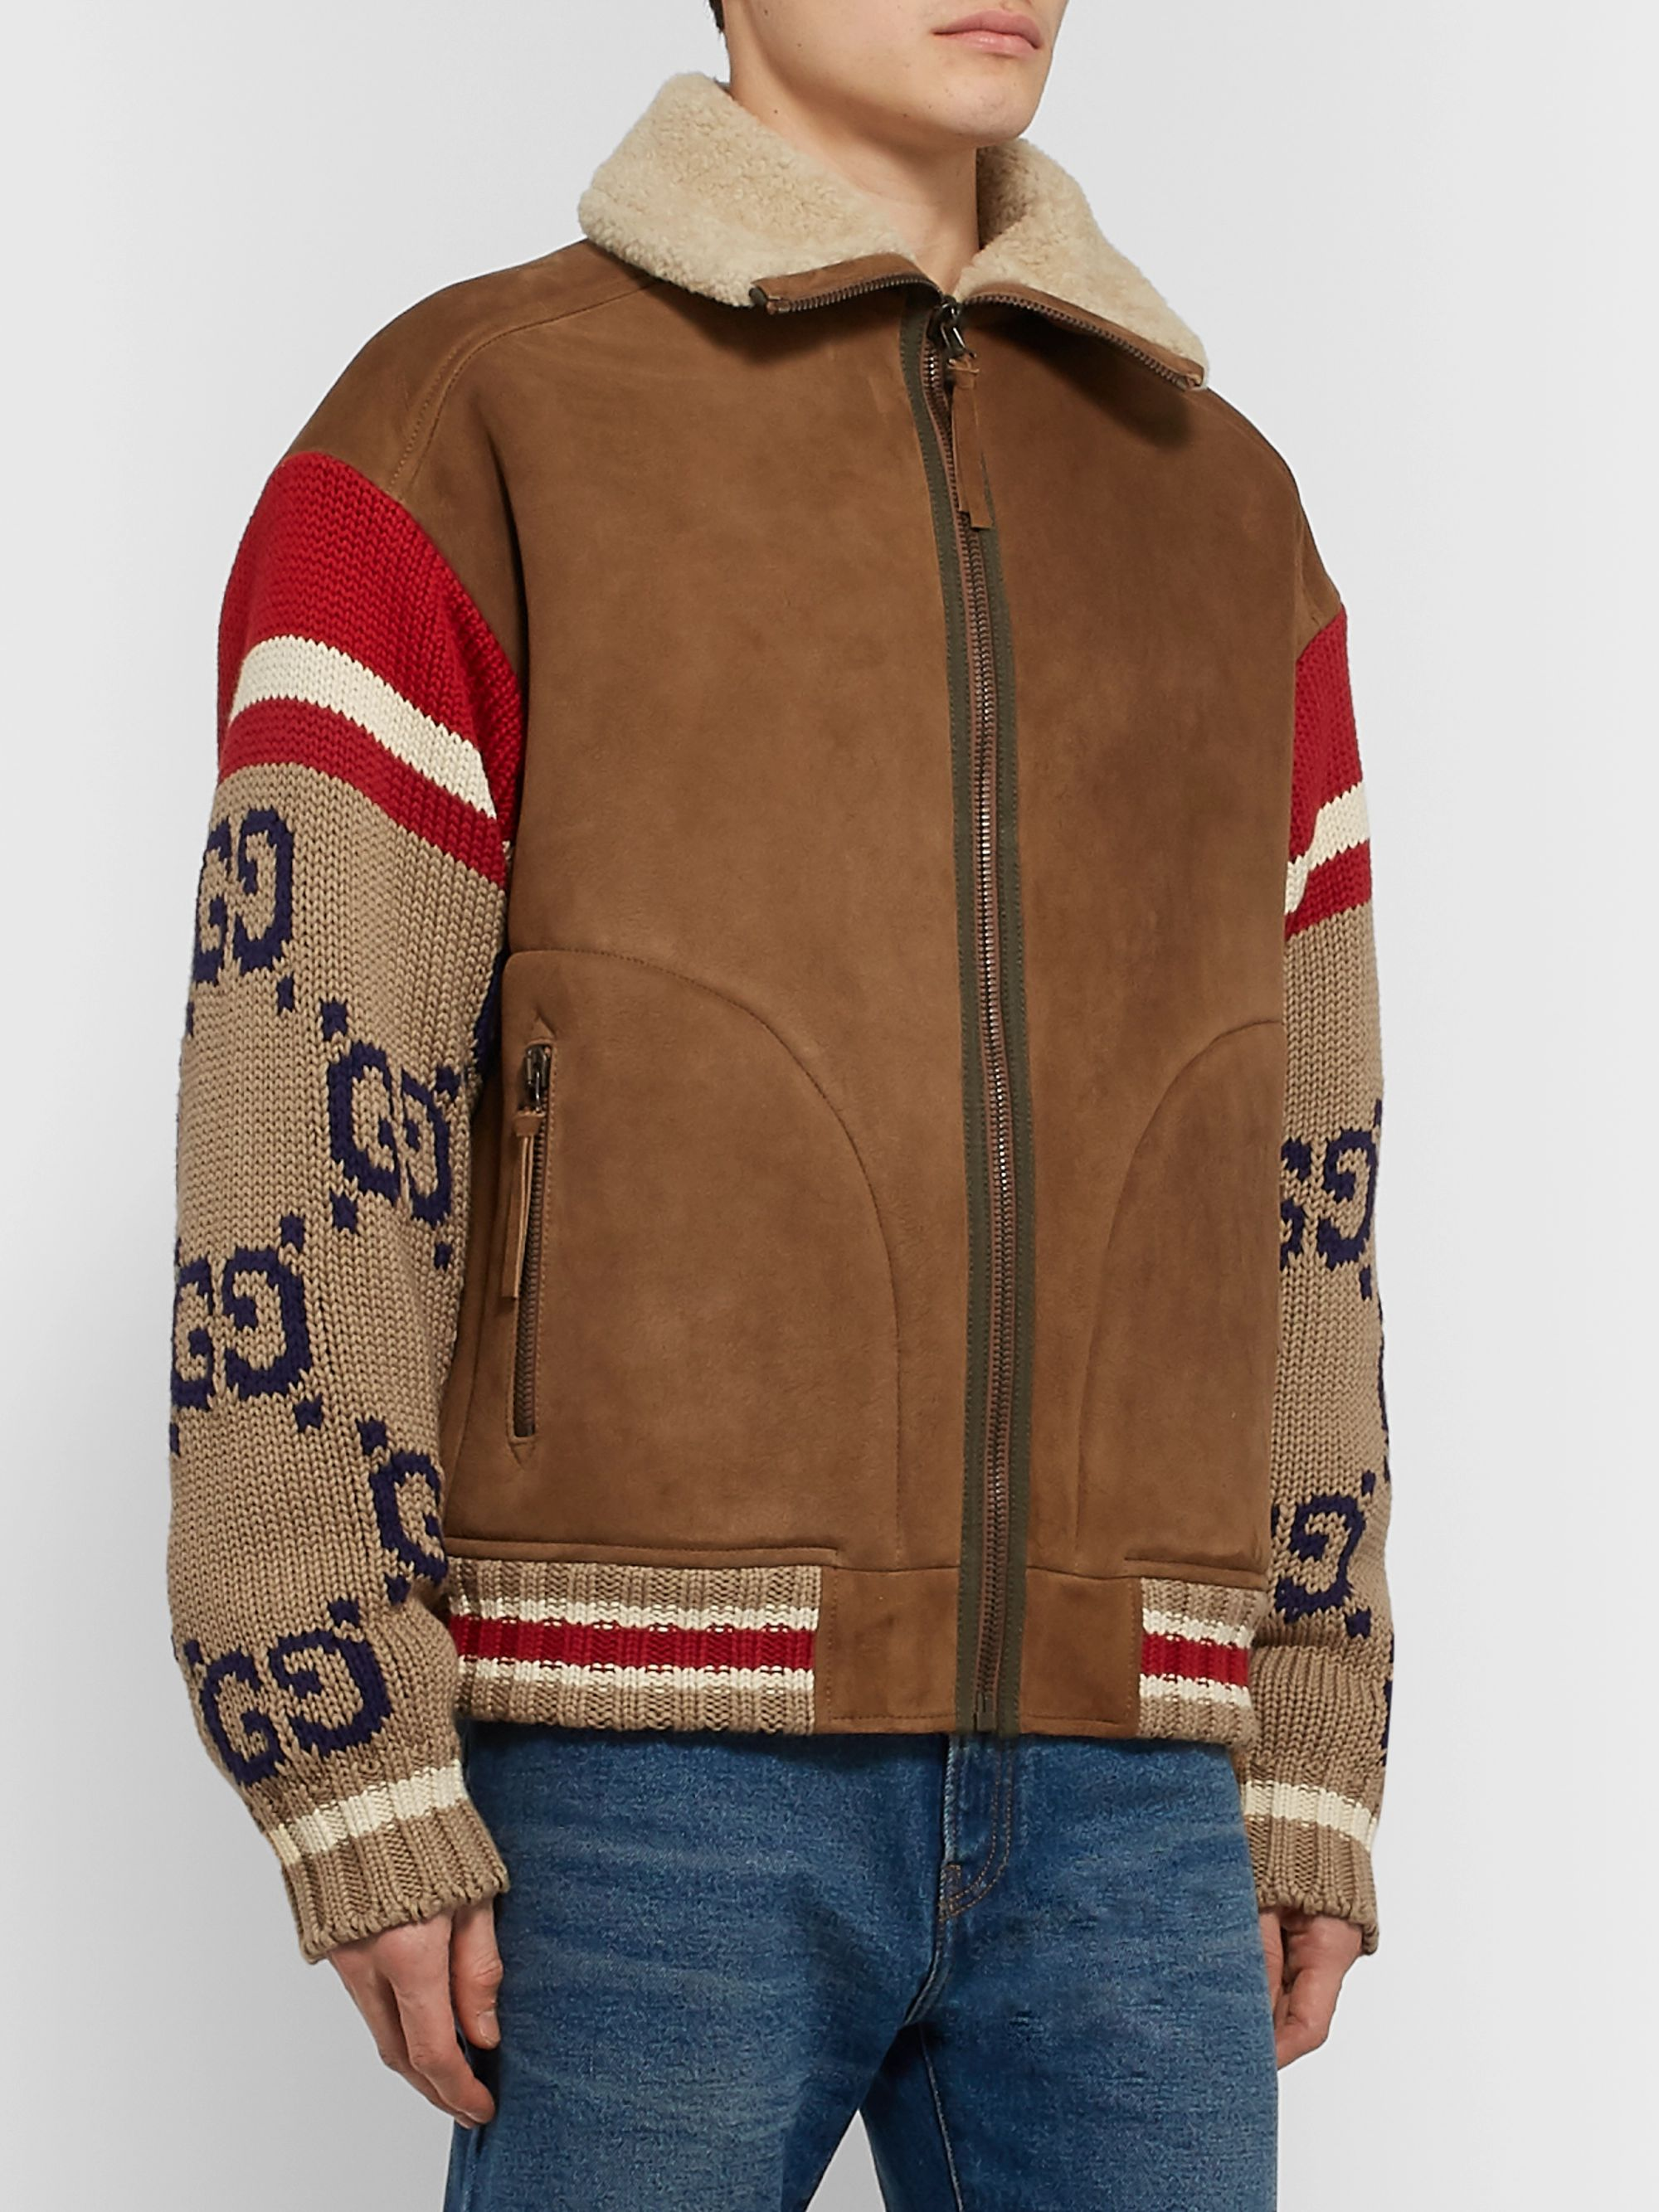 Gucci Logo-Jacquard and Shearling Jacket